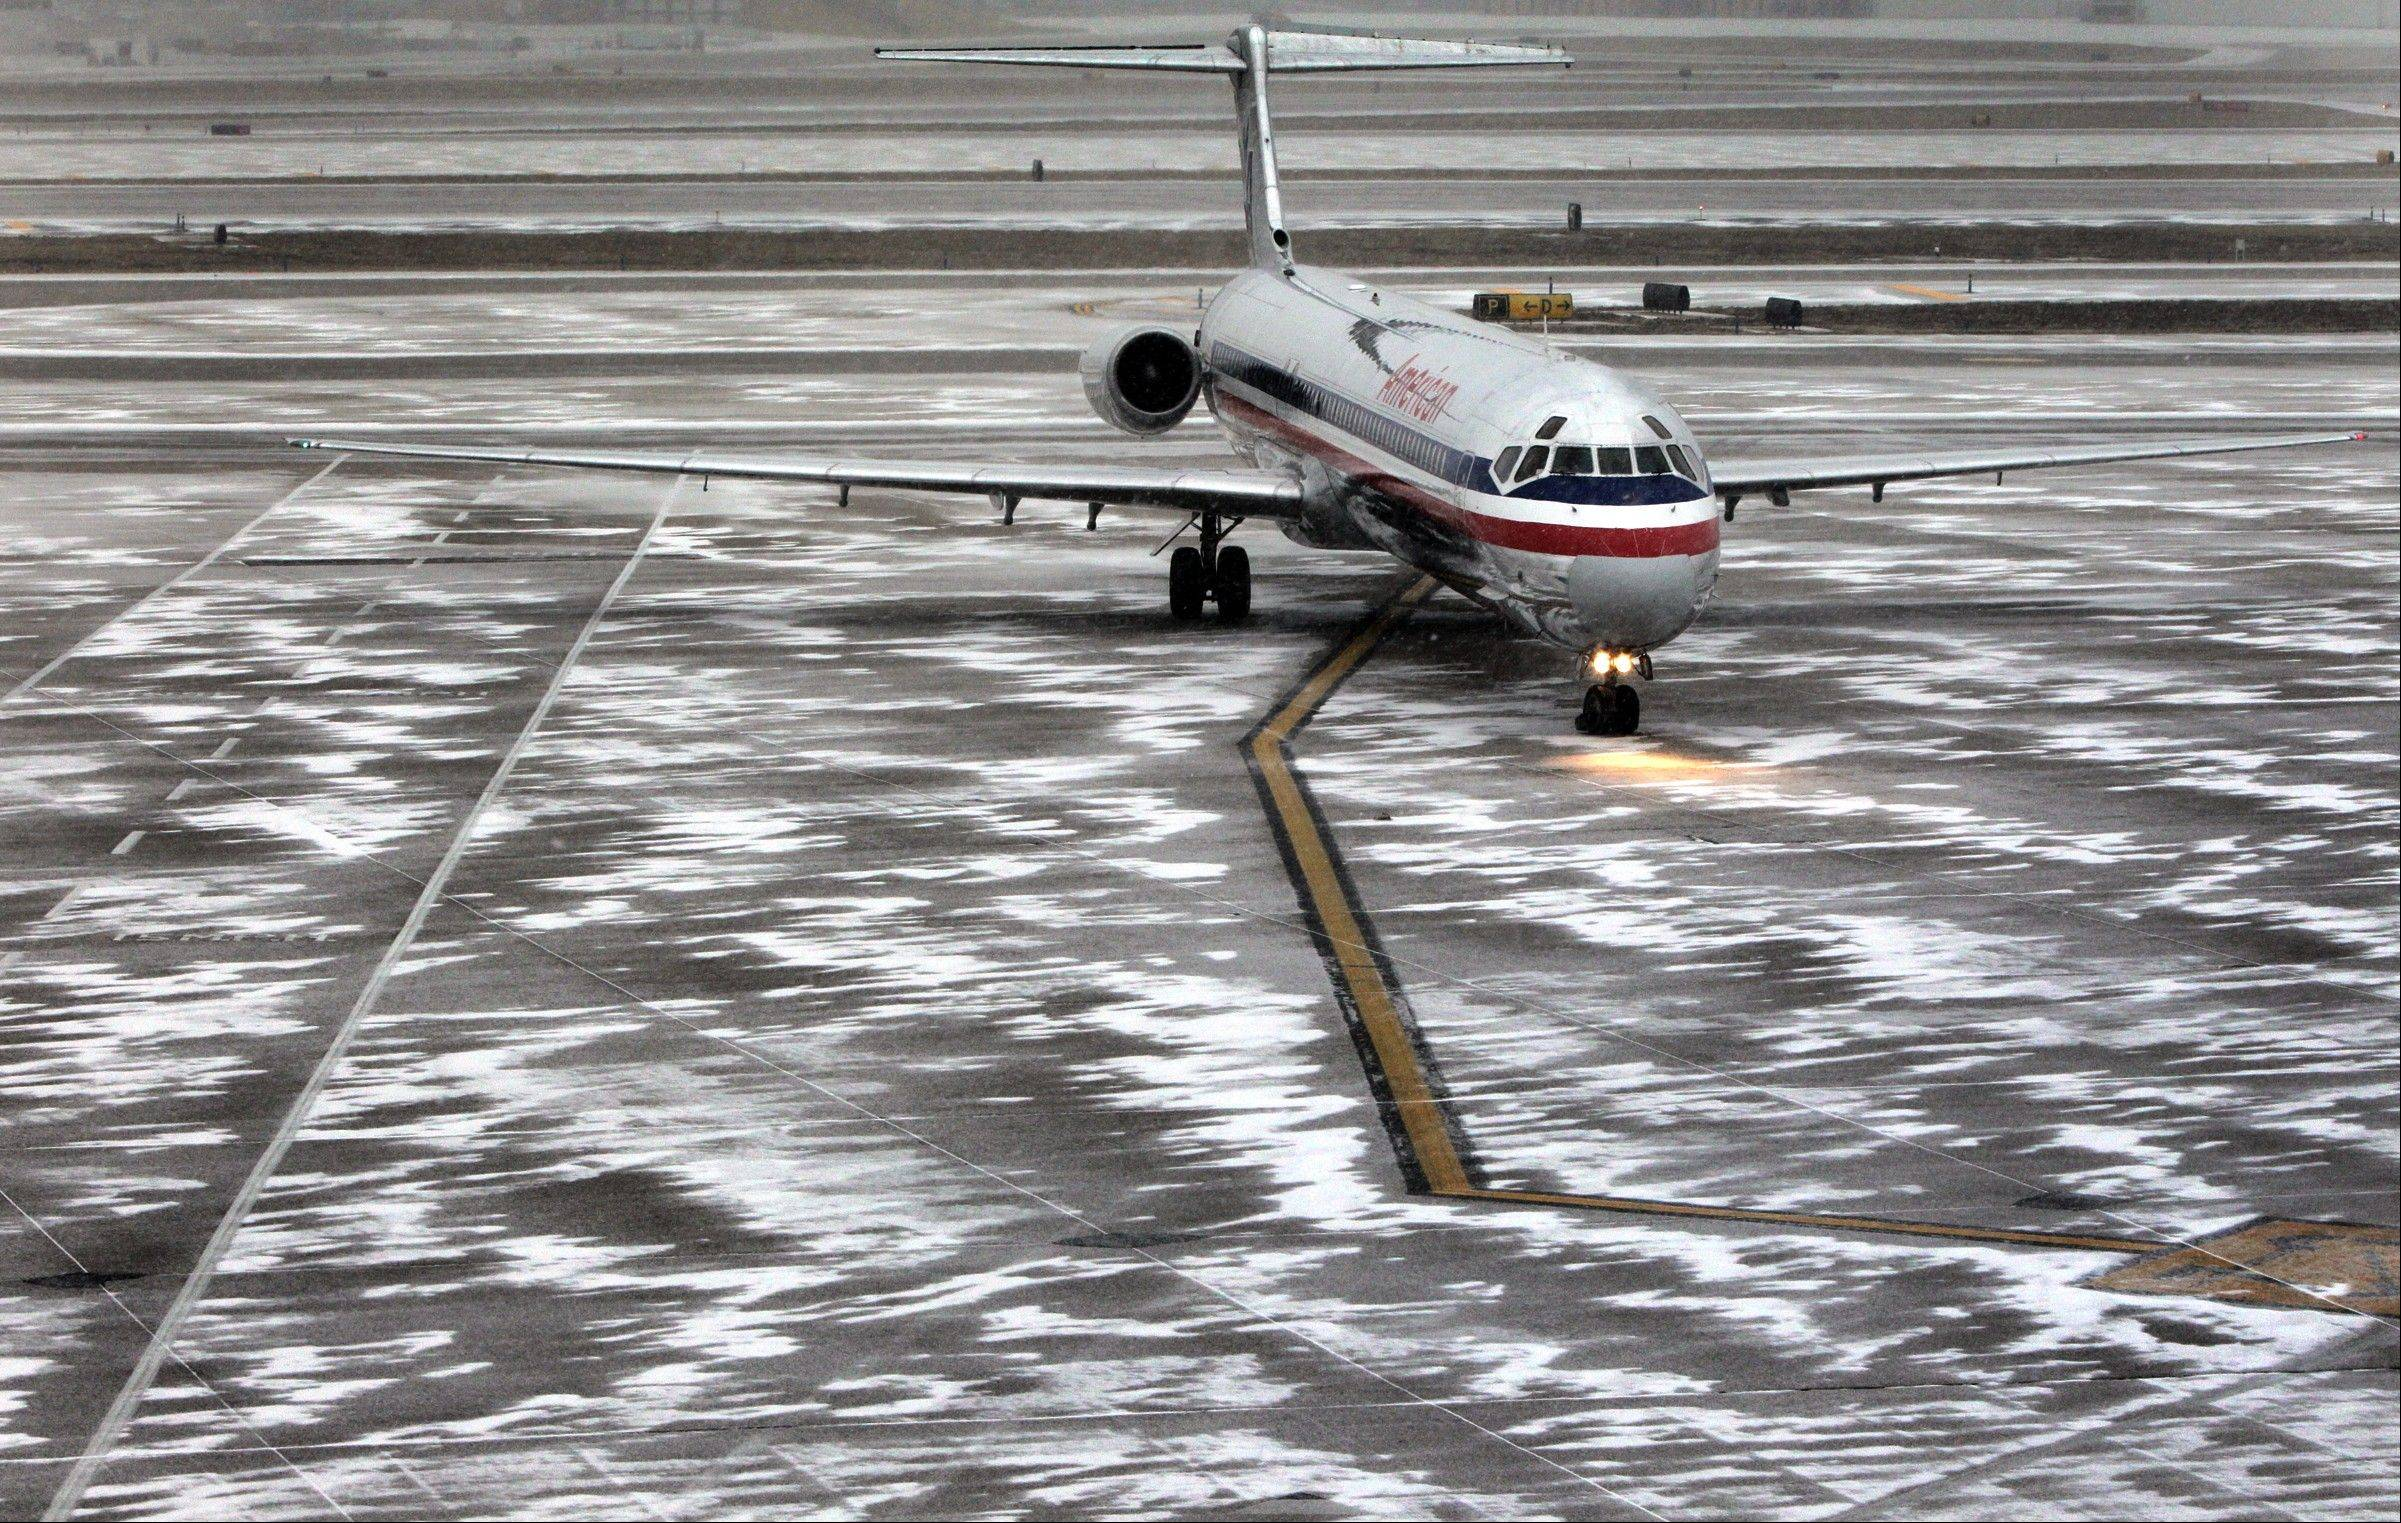 An American Airlines flight arrives as sleet falls at Lambert-St. Louis International Airport, on Thursday, Feb. 21, 2013. Blinding snow, at times accompanied by thunder and lightning, bombarded much of the nation's midsection Thursday. Freezing rain and sleet were forecast for southern Missouri, southern Illinois and Arkansas. St. Louis was expected to get all of the above � a treacherous mix of snow, sleet and freezing rain.